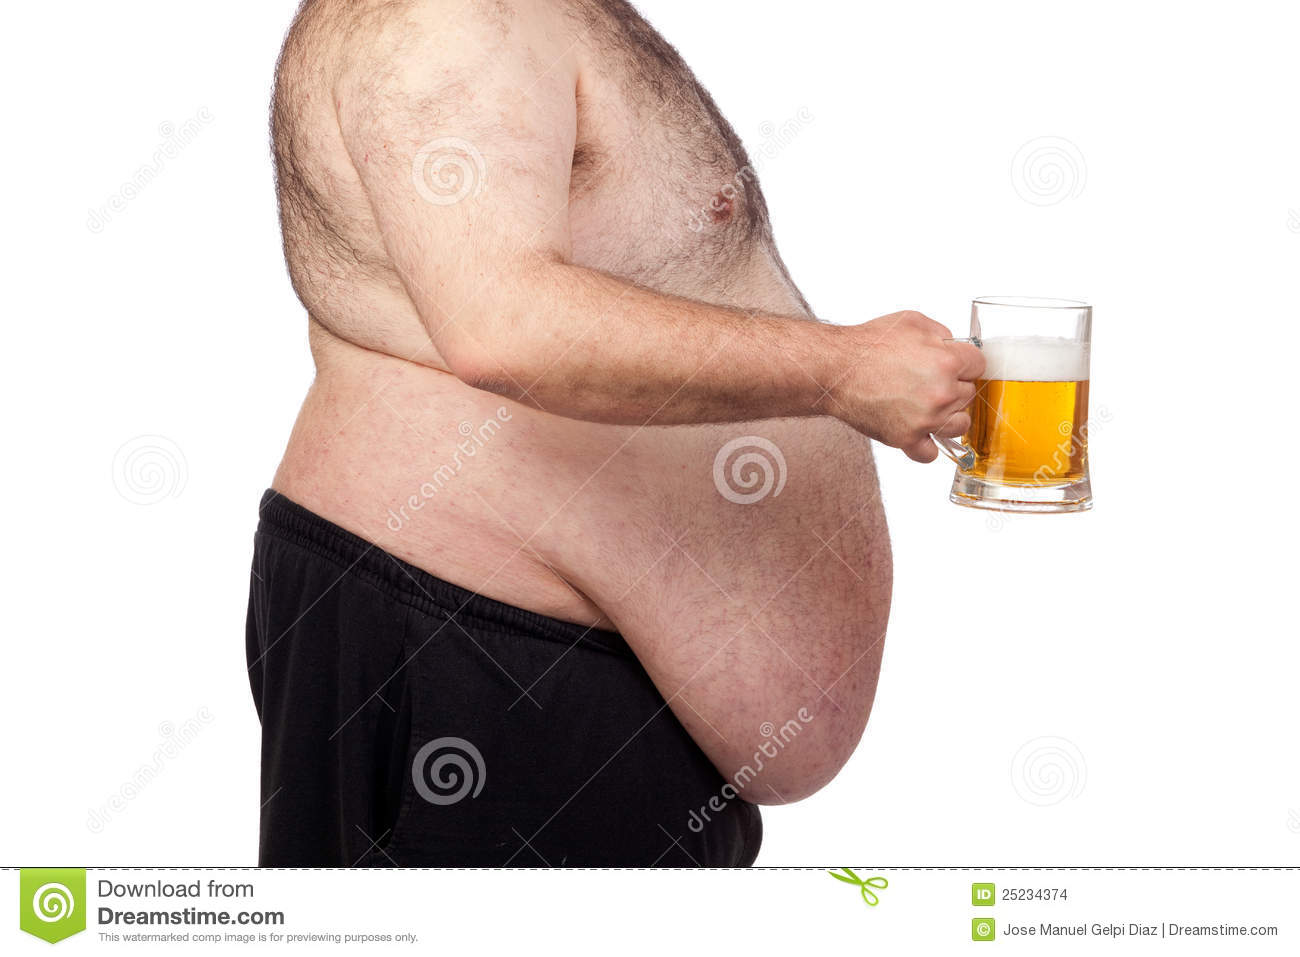 Fat Man Drinking A Jar Of Beer Stock Photo - Image: 25234374